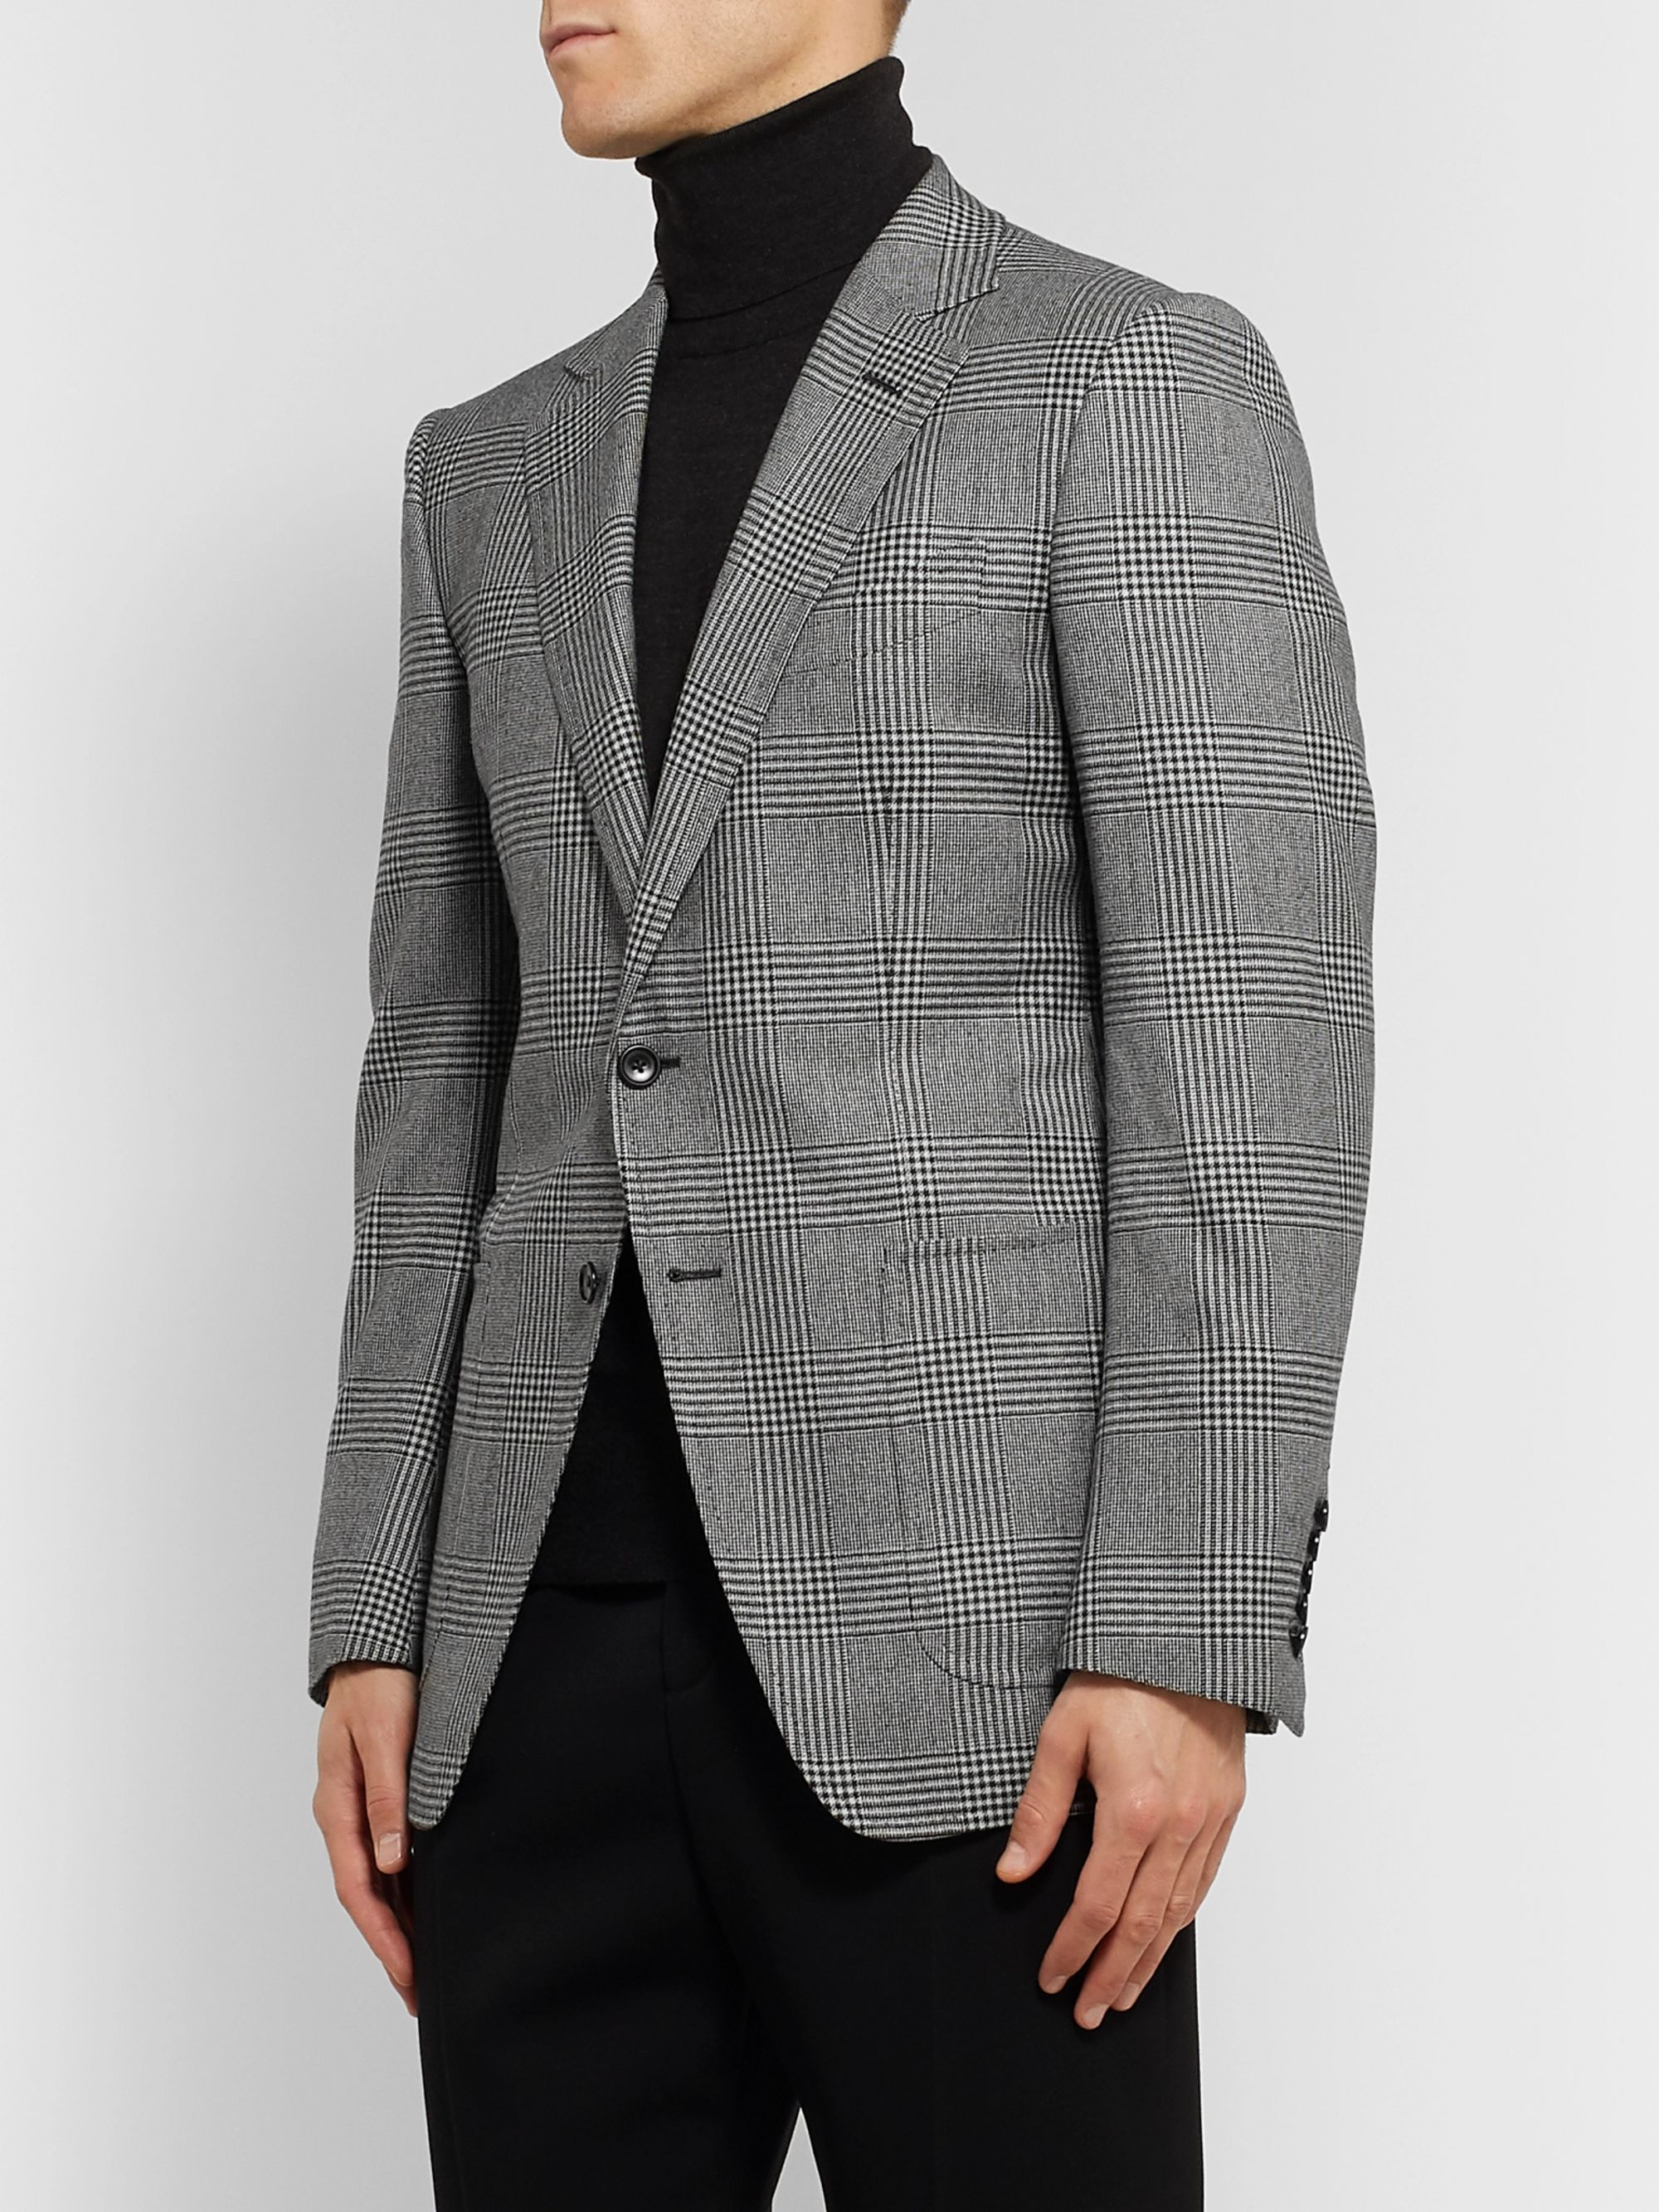 TOM FORD Grey O'Connor Slim-Fit Prince of Wales Checked Wool Blazer